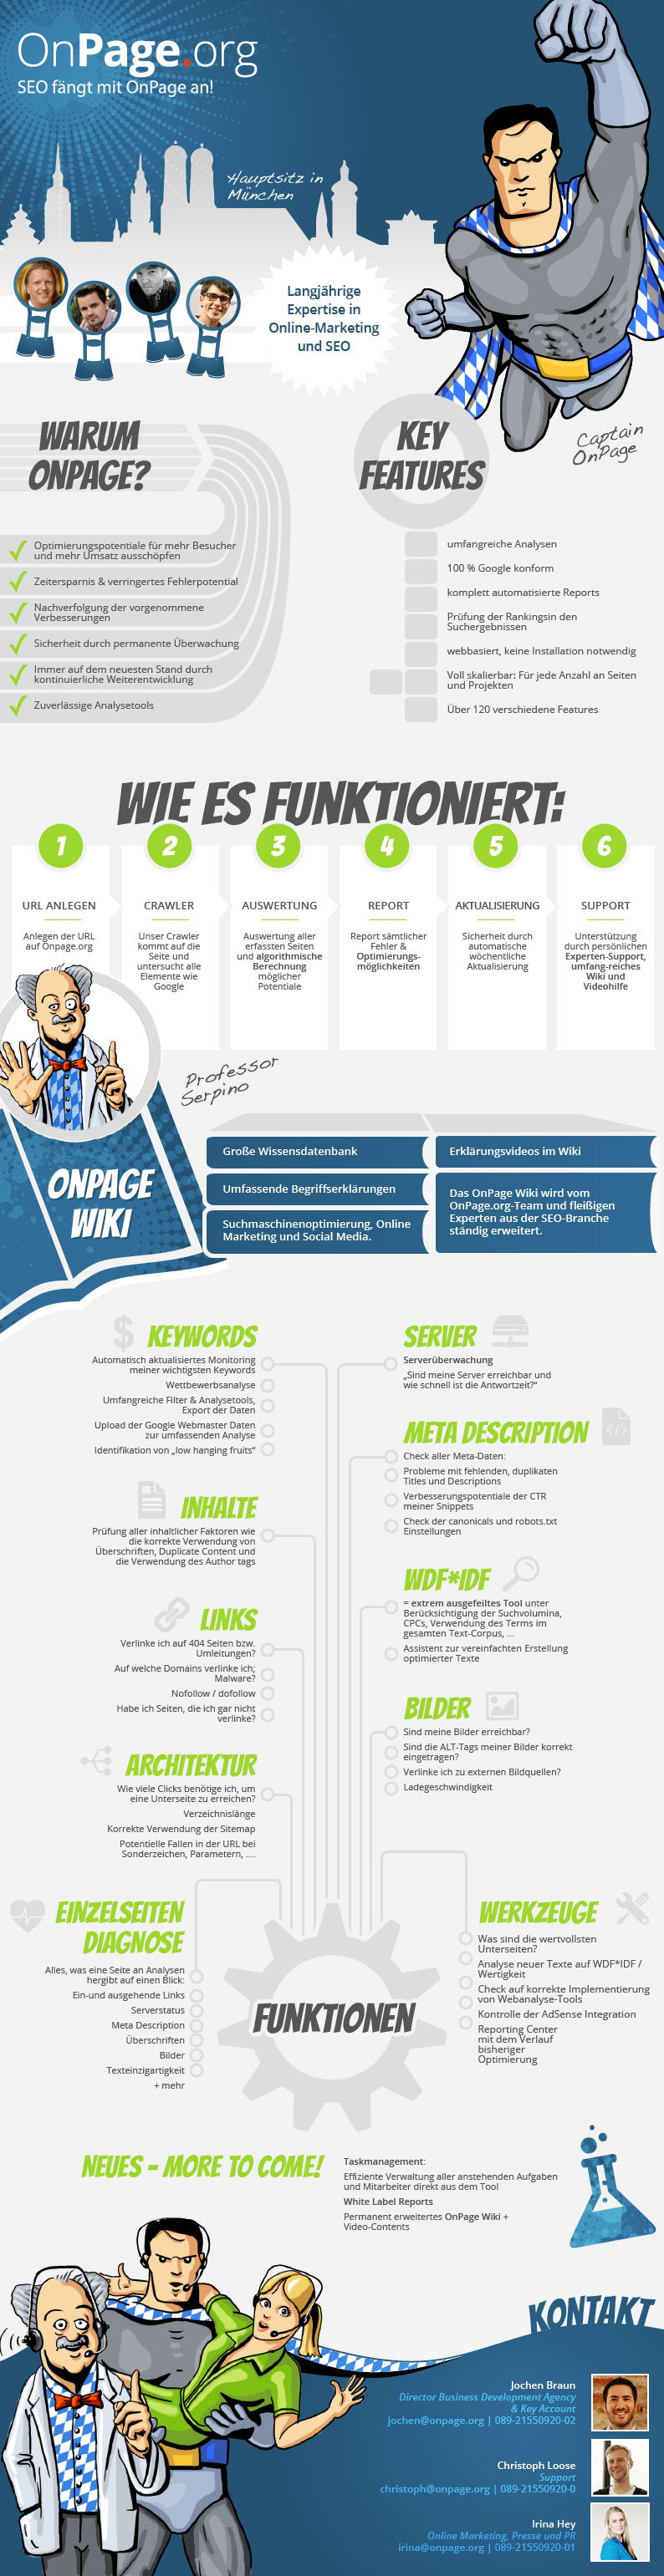 OnPage.org - how it works